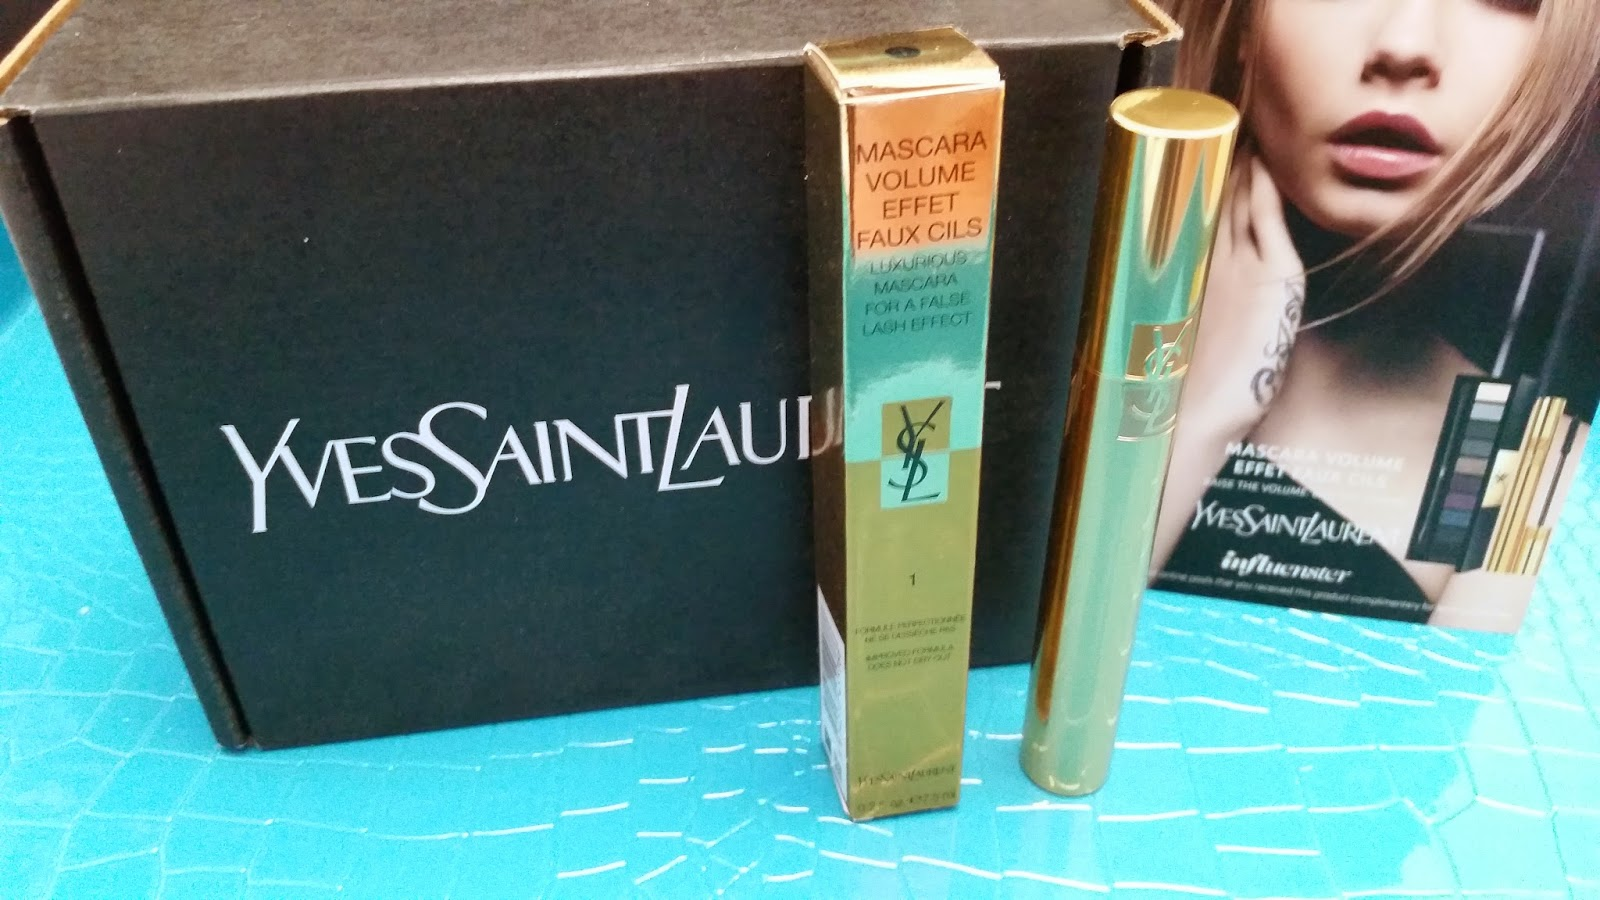 Yves Saint Laurent Mascara Volume Effet Faux Cils and voxbox